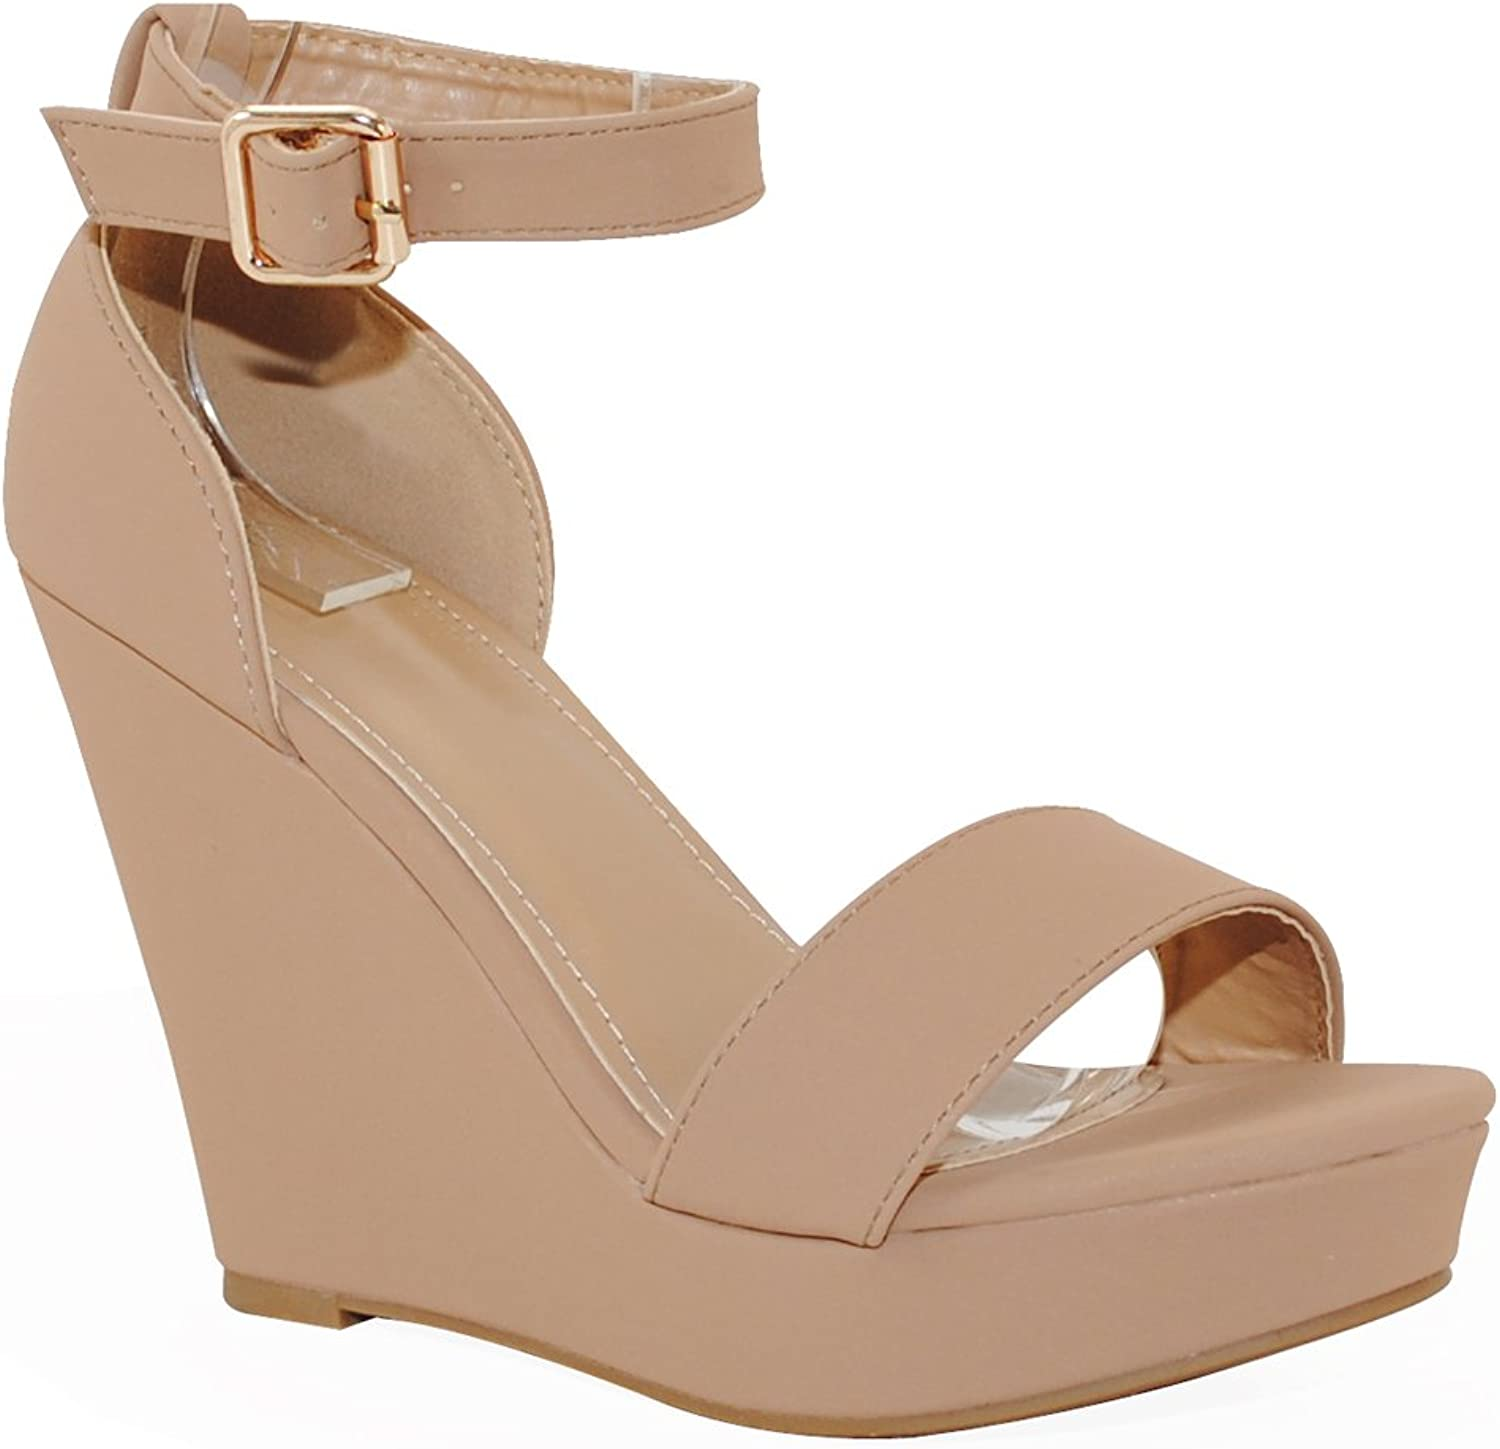 TRENDSup Collection Women's Fashion Platform Wedge Sandals